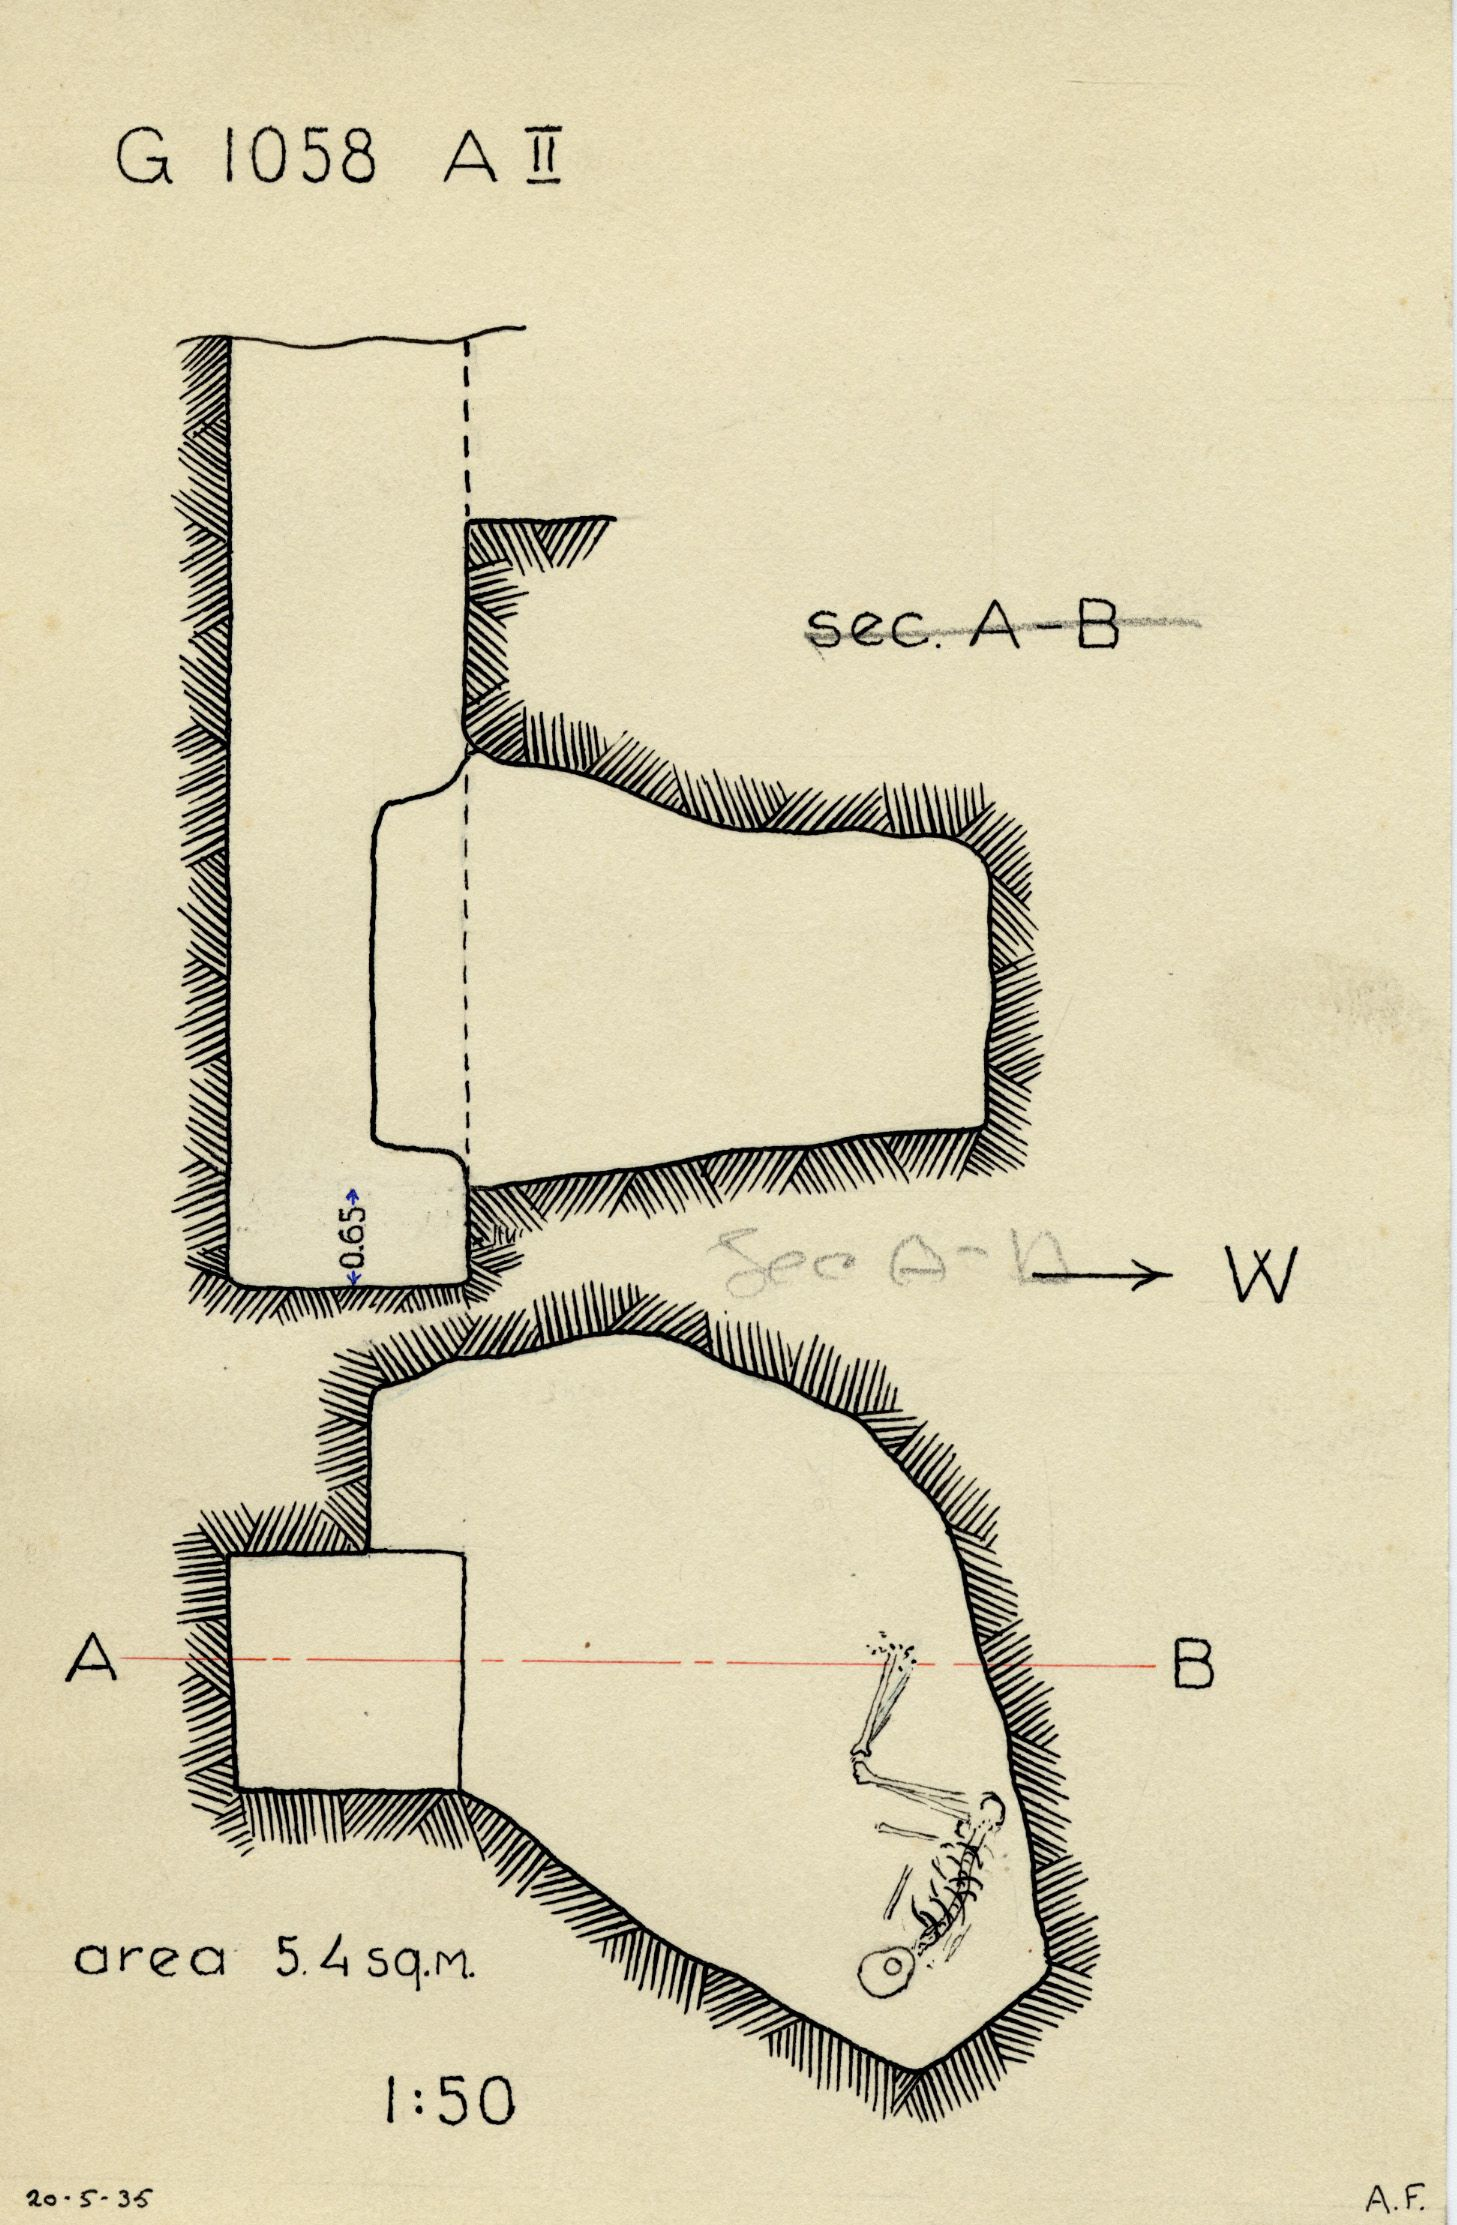 Maps and plans: G 1058, Shaft A (II)